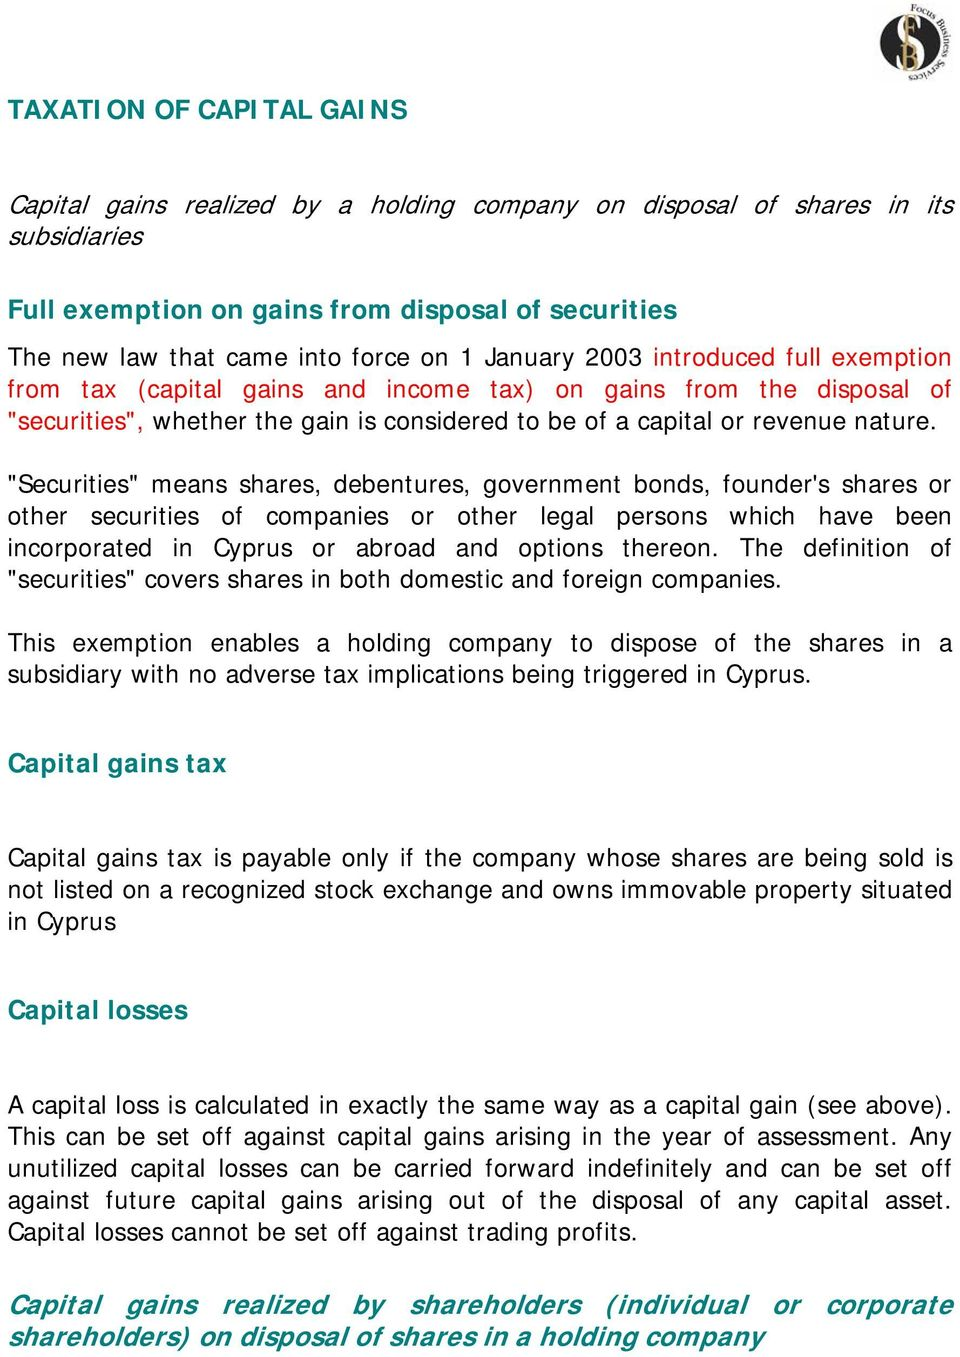 """Securities"" means shares, debentures, government bonds, founder's shares or other securities of companies or other legal persons which have been incorporated in Cyprus or abroad and options thereon."